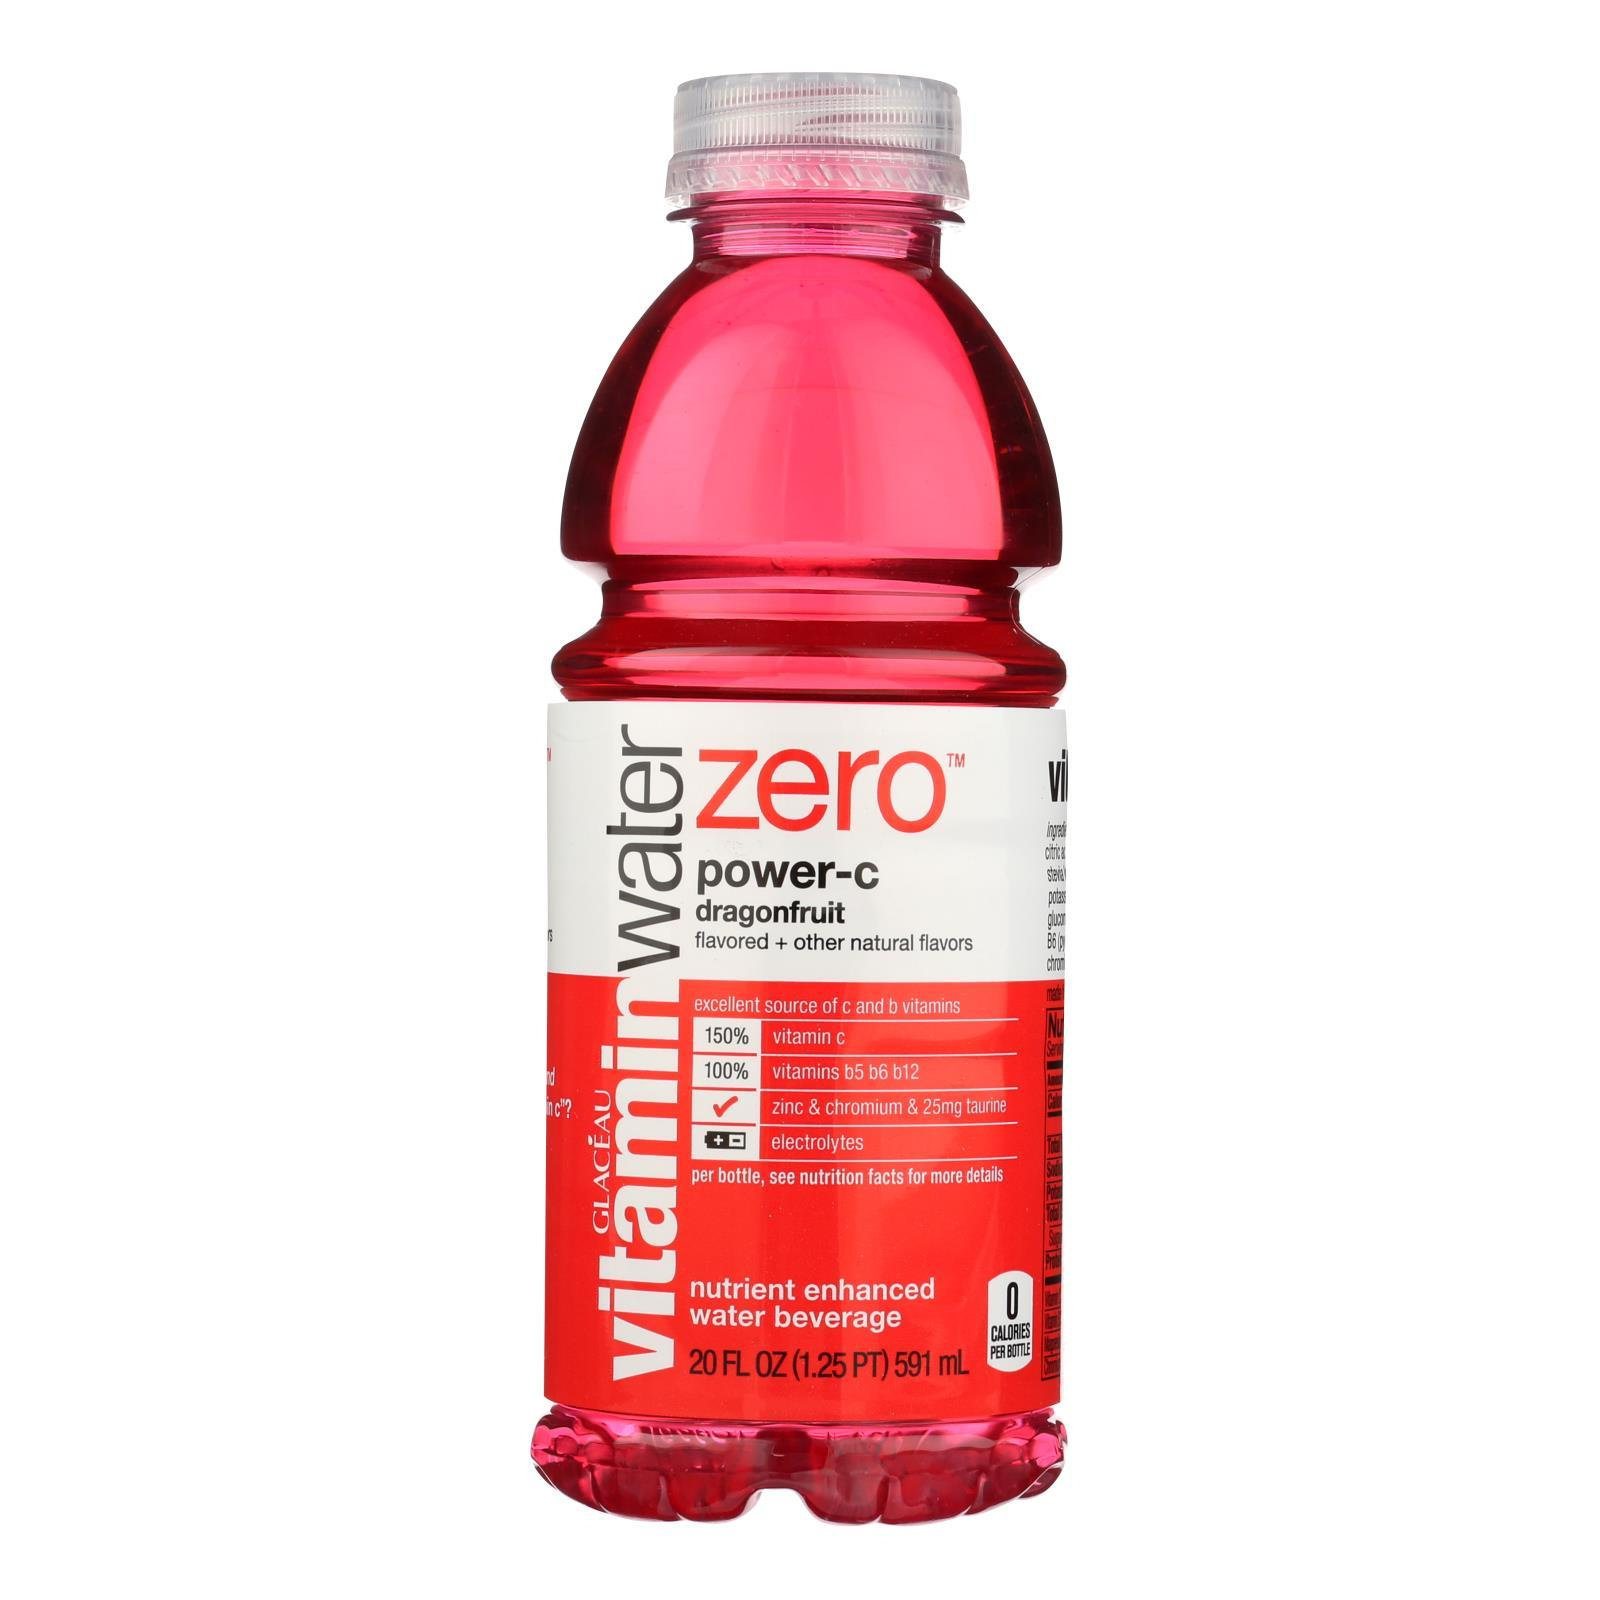 Glaceau Vitamin Water Dragonfruit Flavor Nutrient Enhanced Water Beverage - Case Of 12 - 20 Fz - BeeGreen